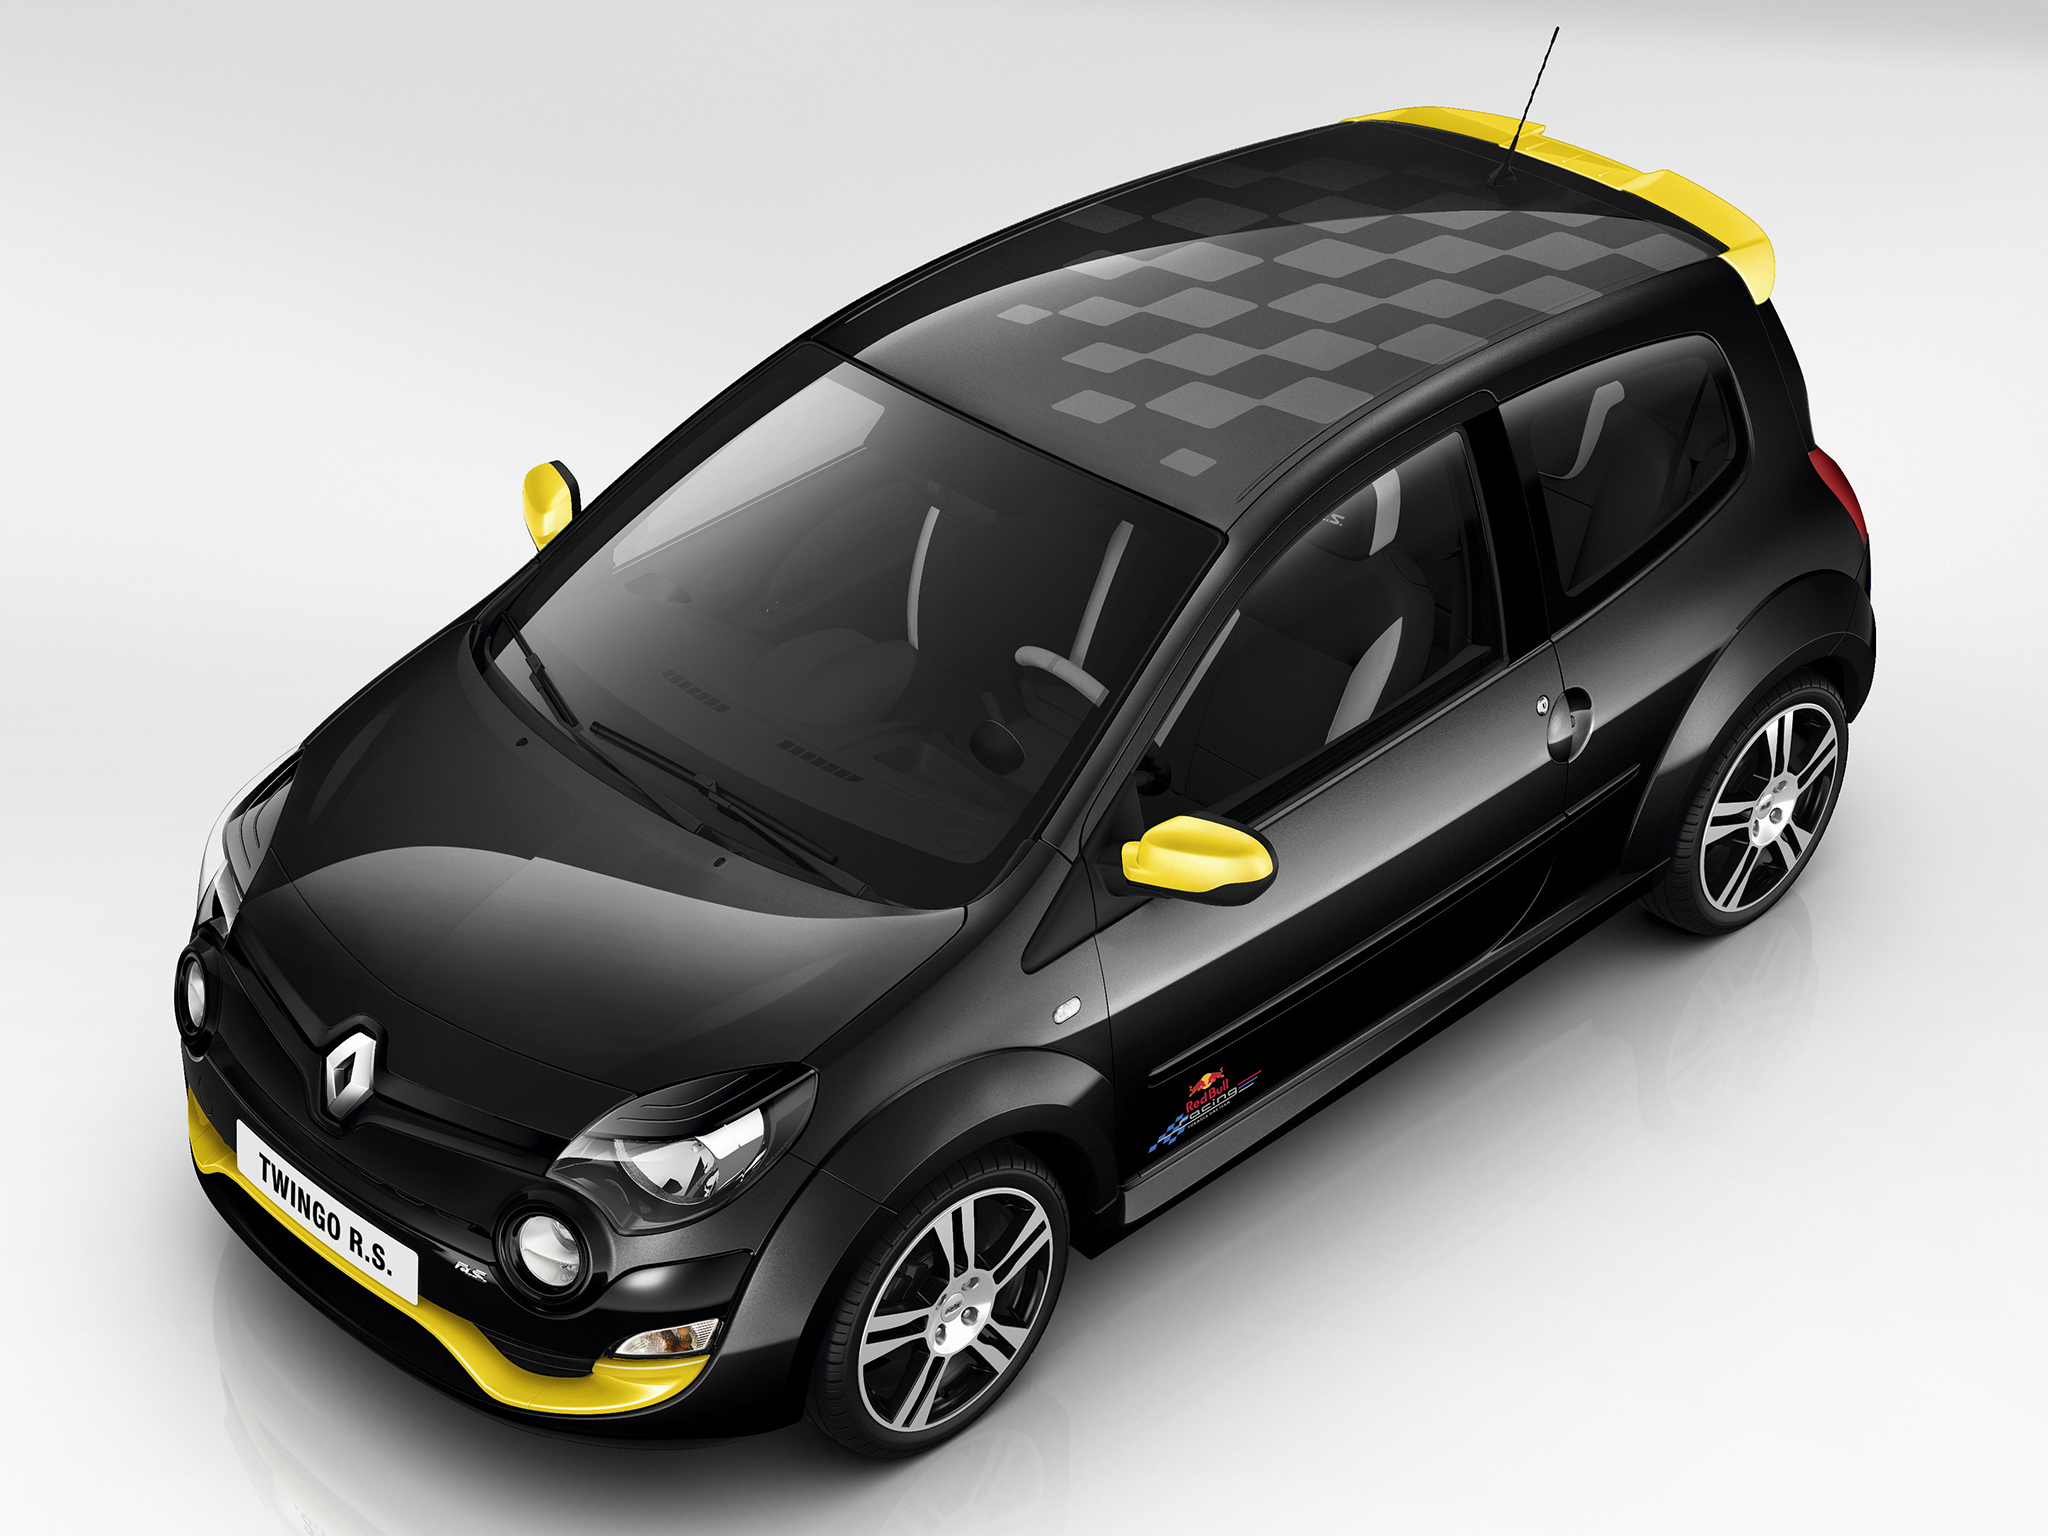 renault twingo rs photos photogallery with 28 pics. Black Bedroom Furniture Sets. Home Design Ideas